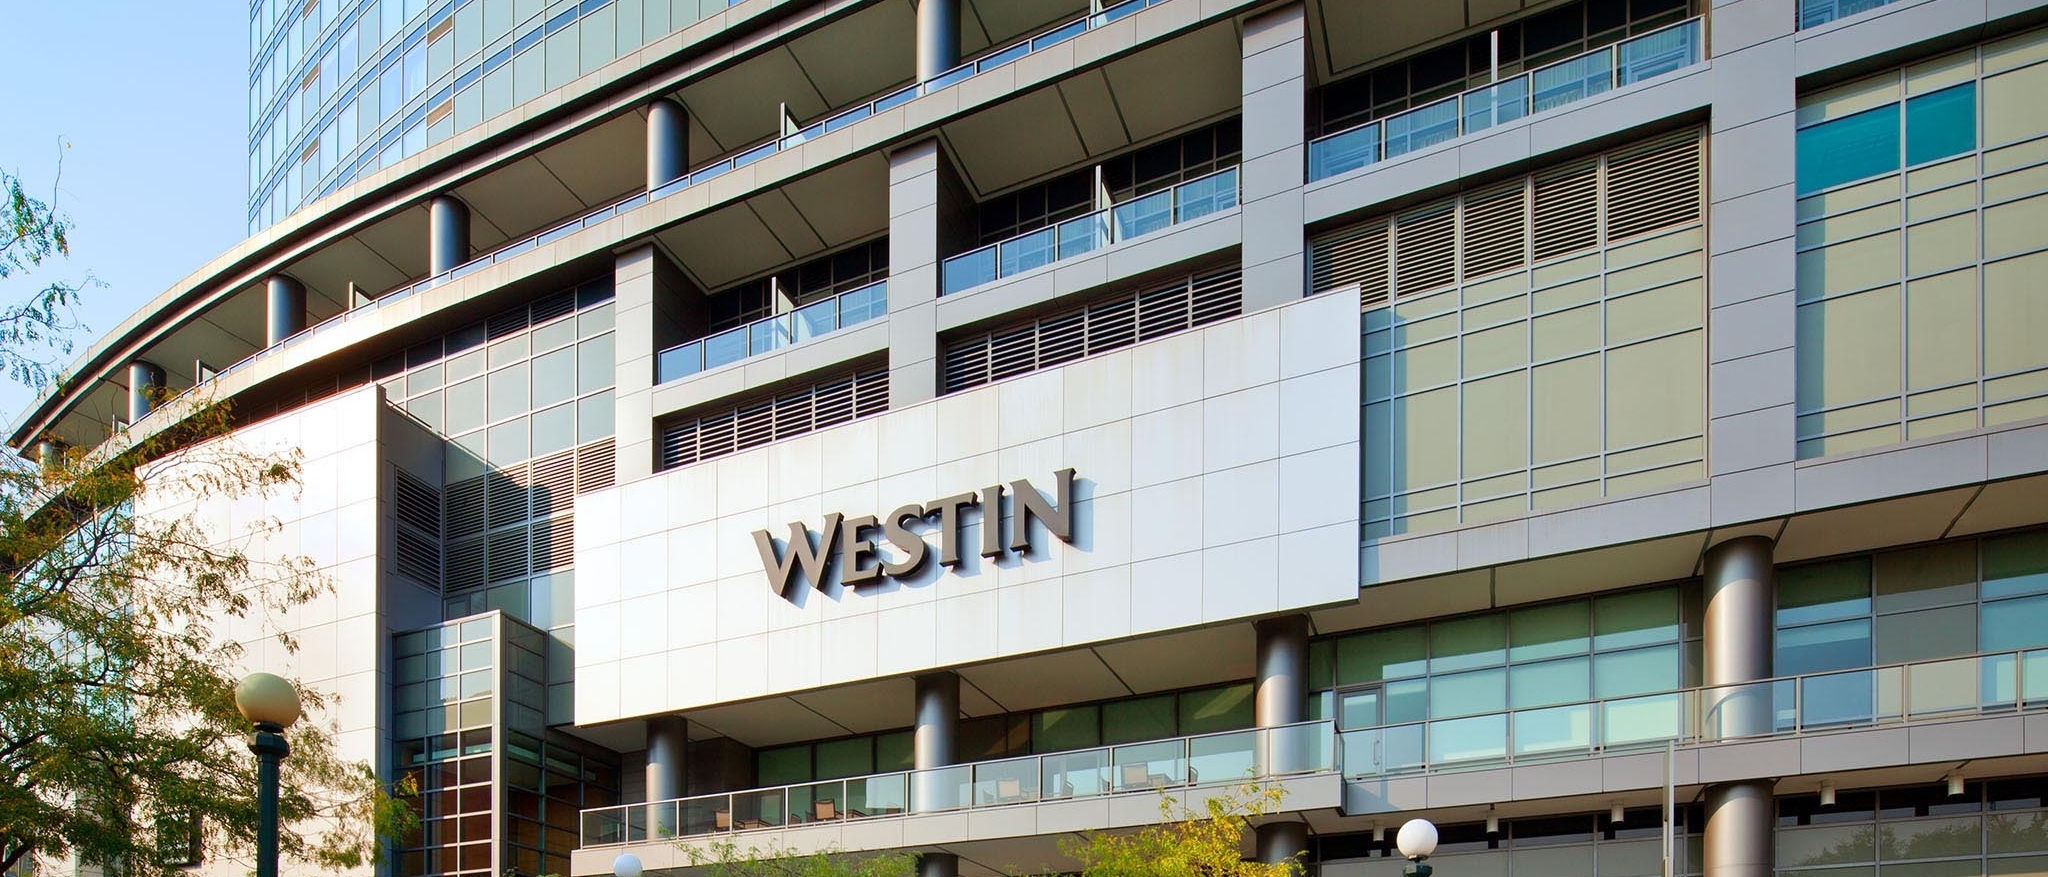 The Westin Bellevue Hotel - Exterior